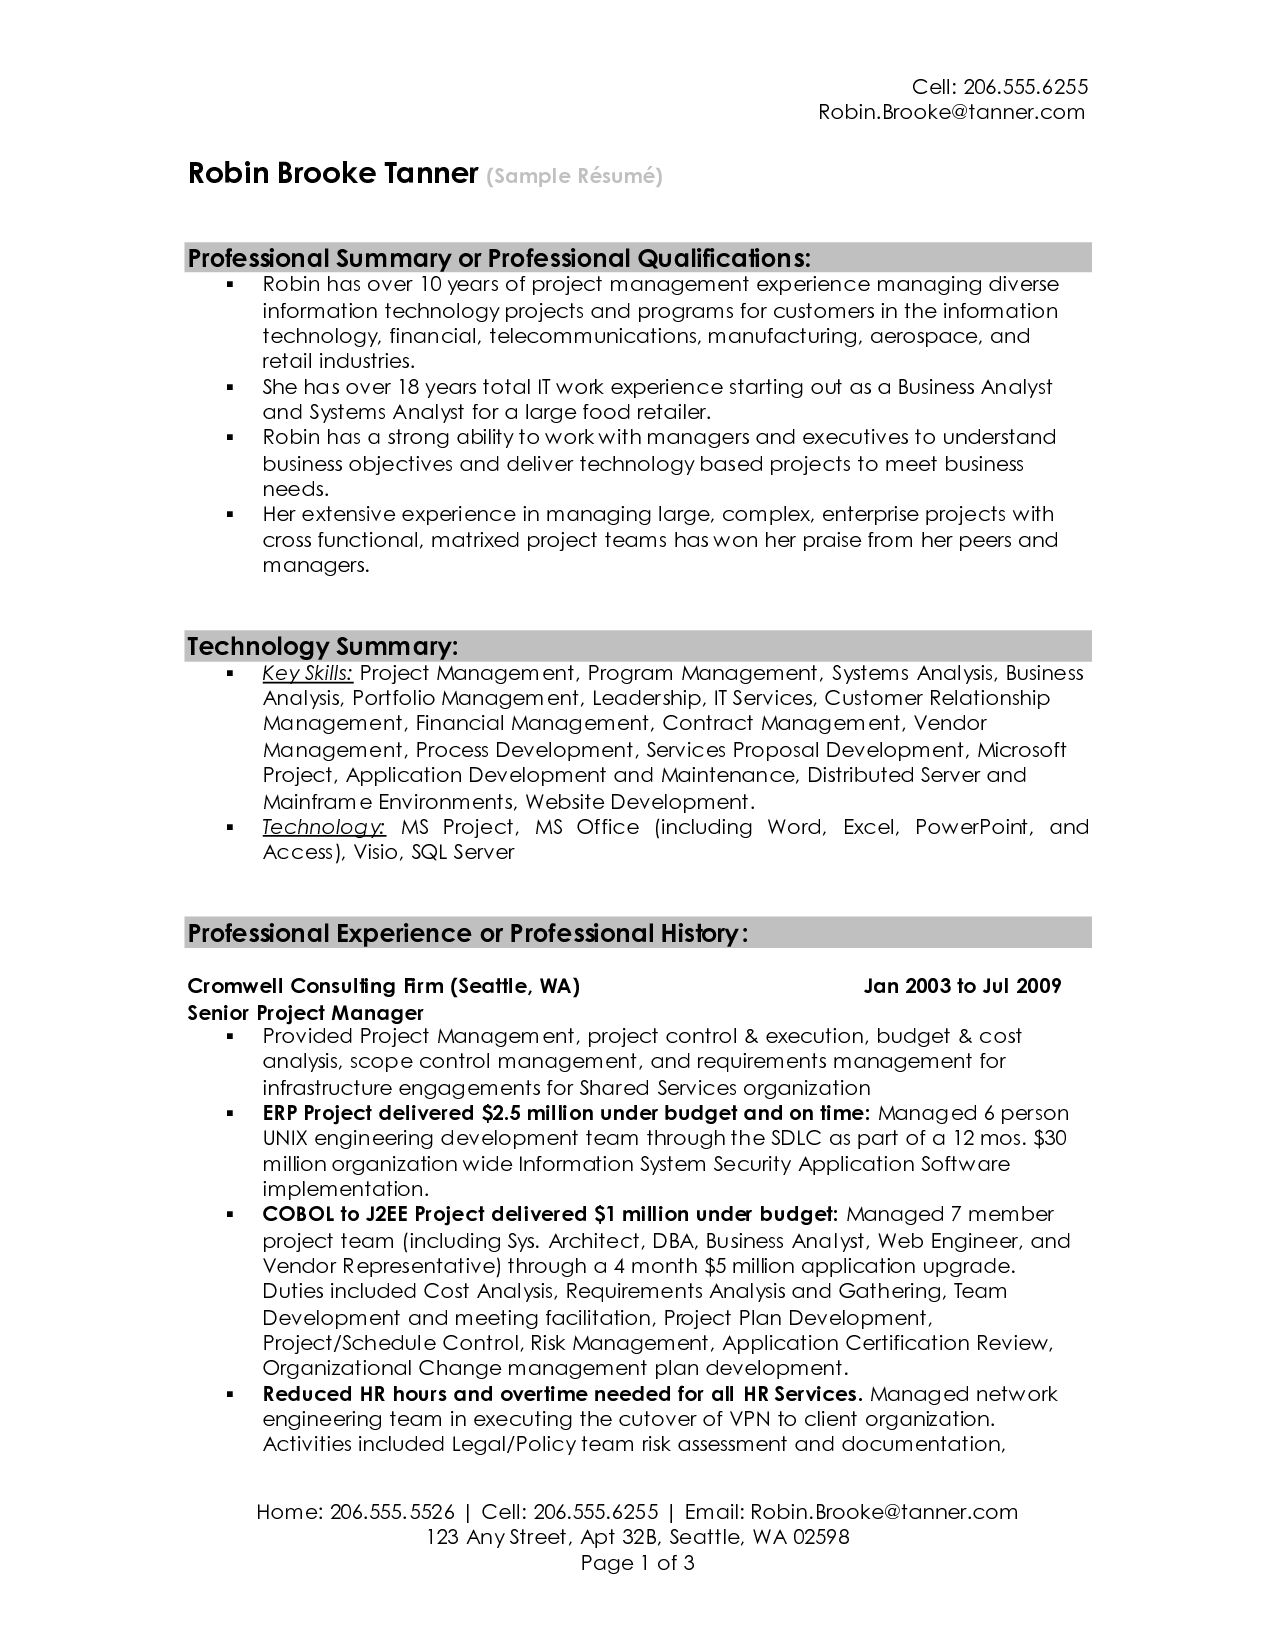 Example Of A Professional Resume Professional Summary Resume Examples Professional Resume Summary